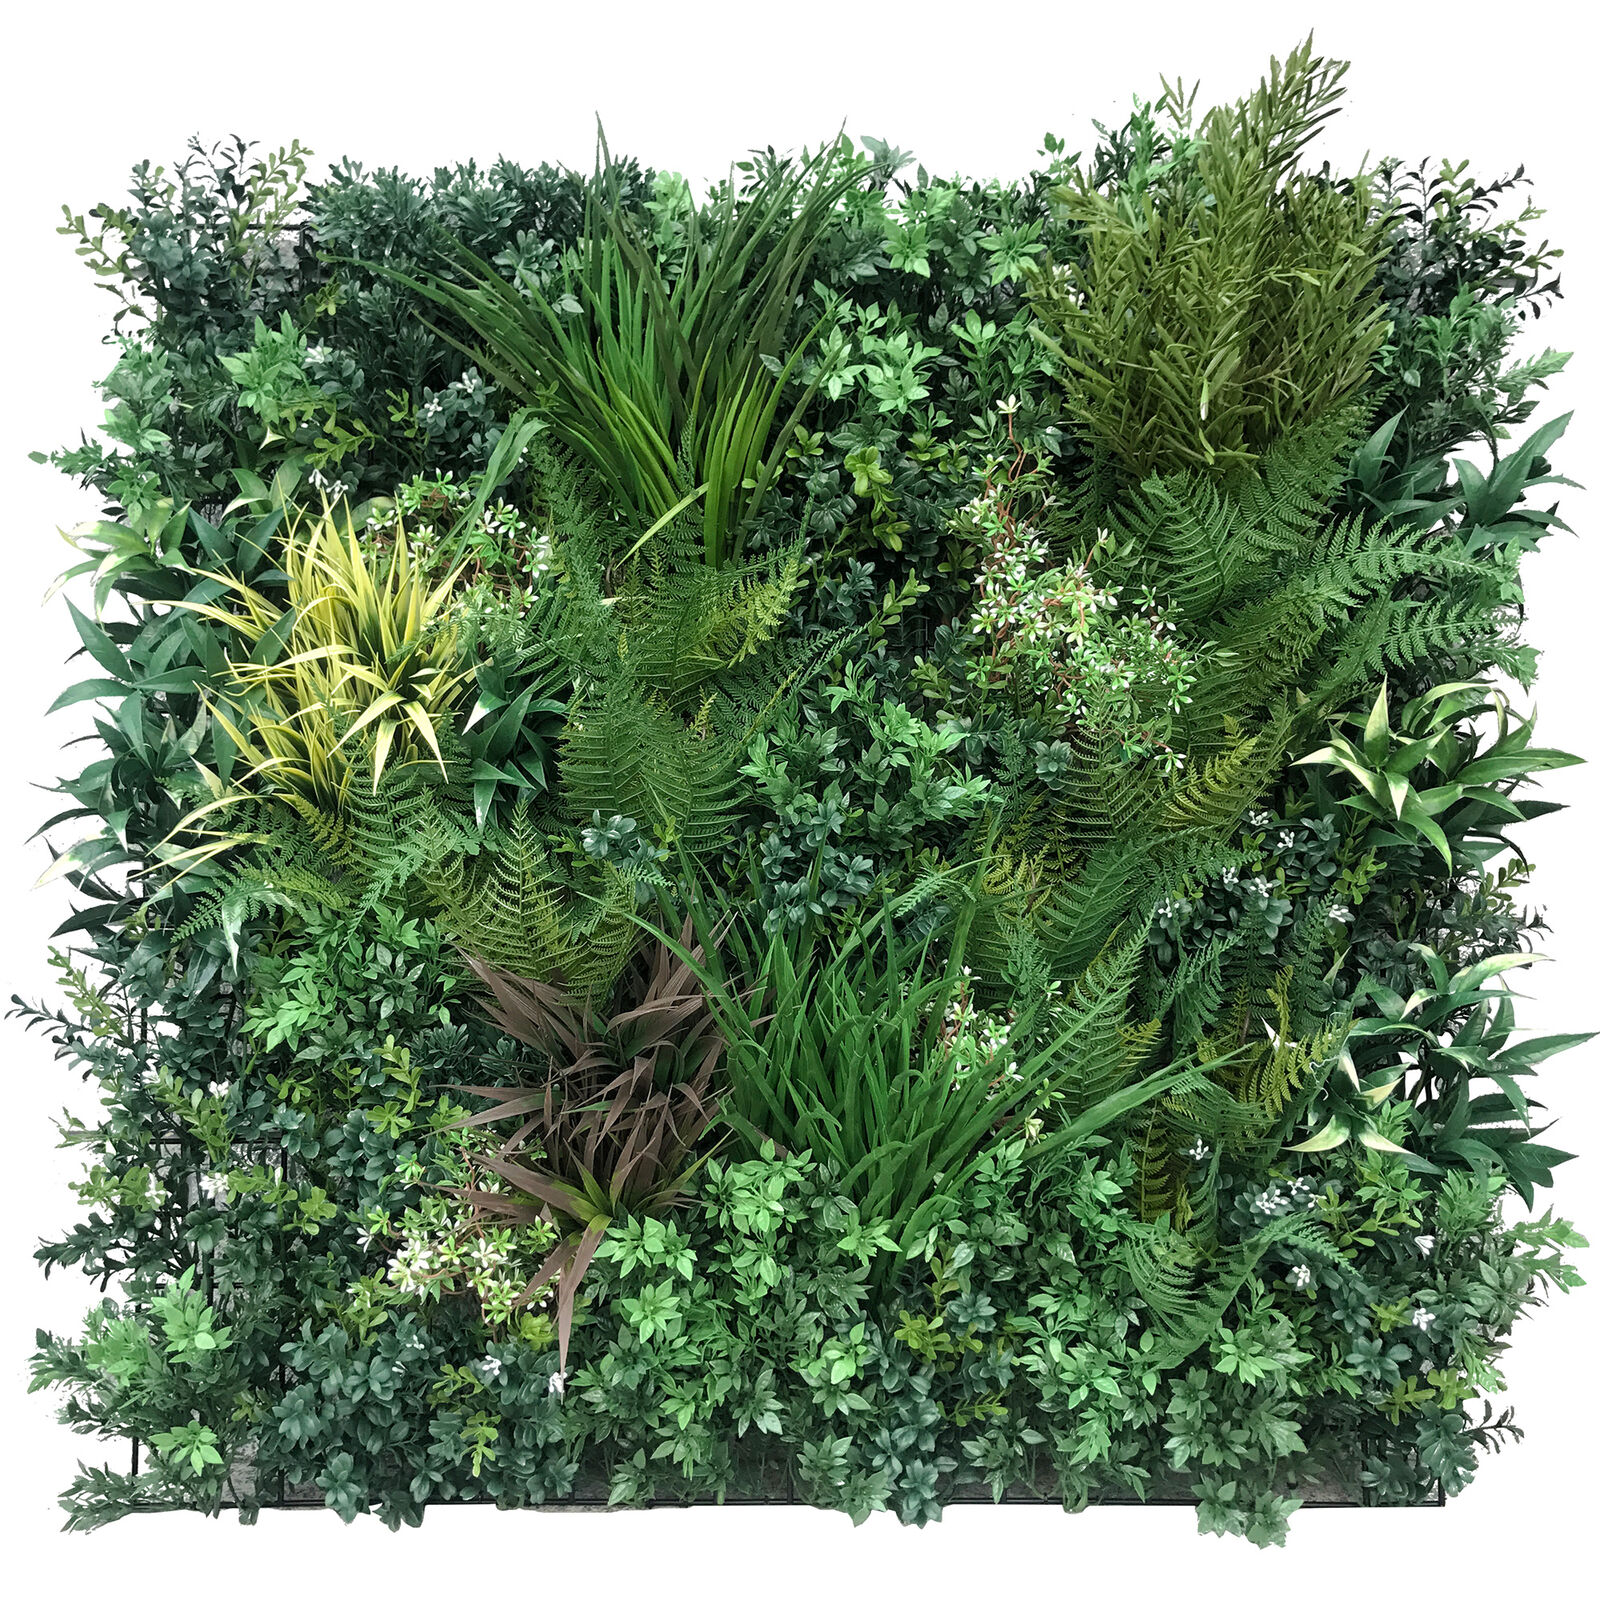 36 x36  IFR UV-Proof Outdoor Artificial Assorted Autumn Grünery Living Wall Mat